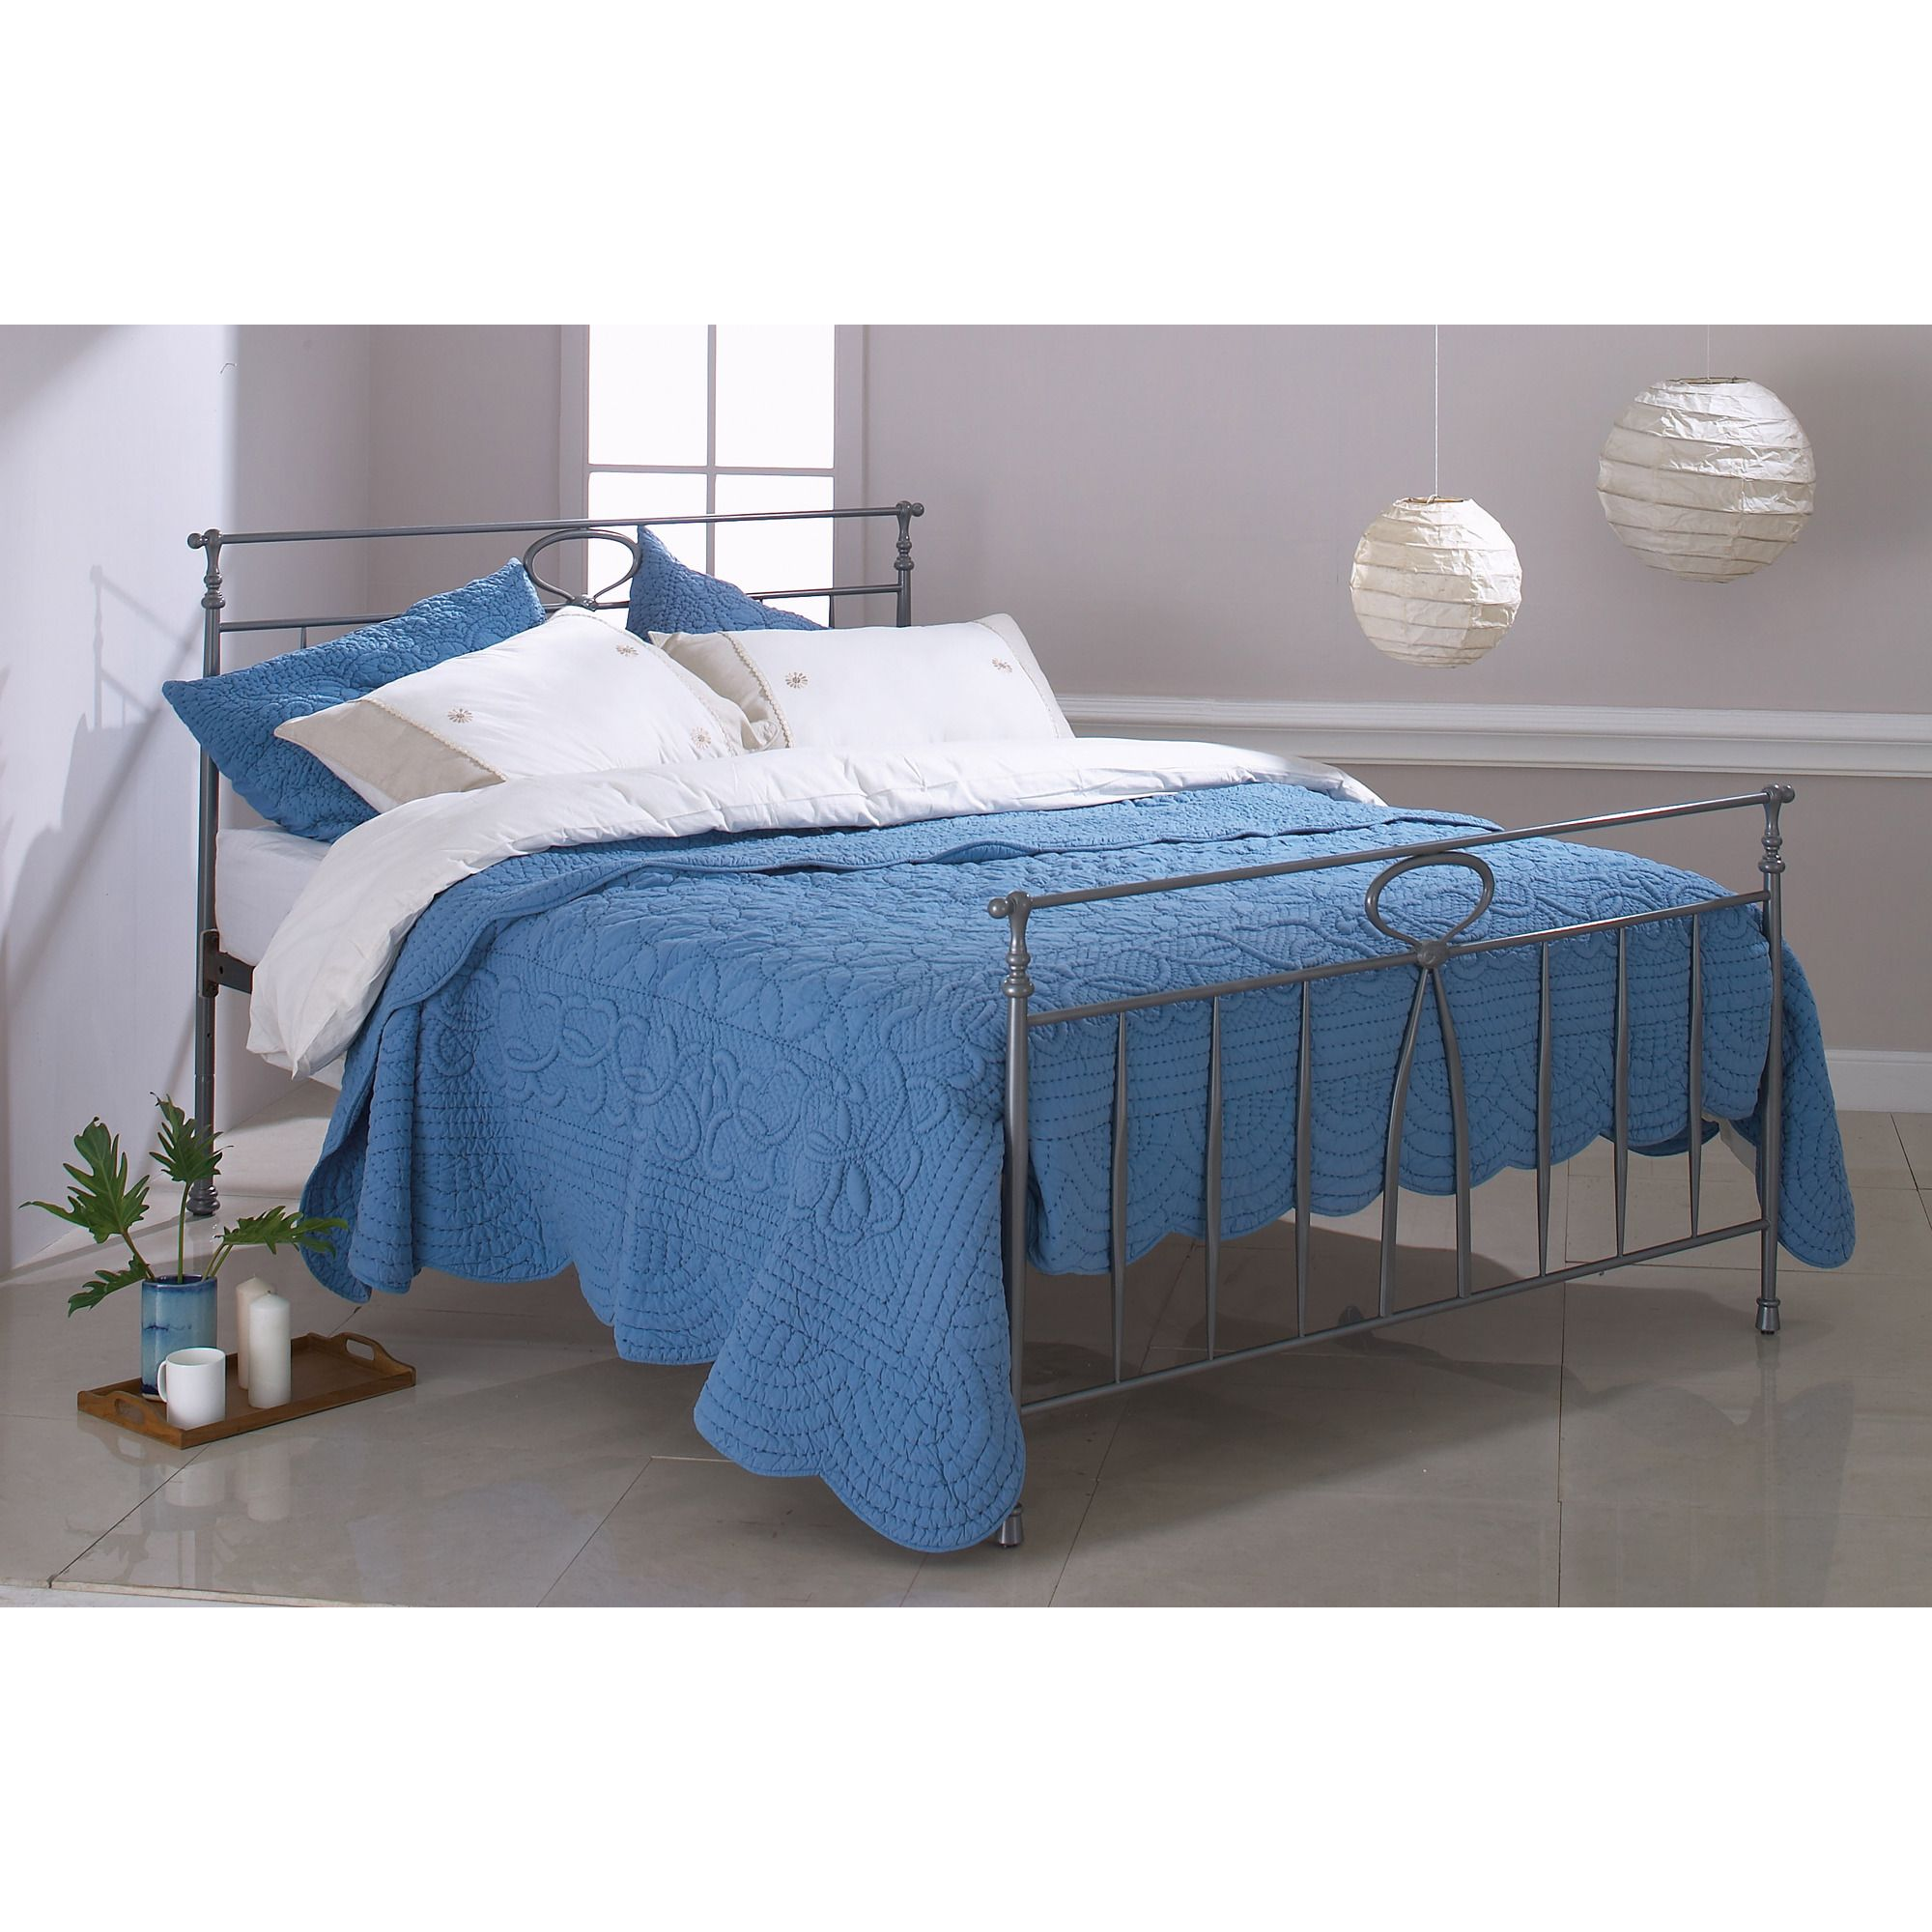 OBC Rora Bed Frame - King - Pewter at Tesco Direct